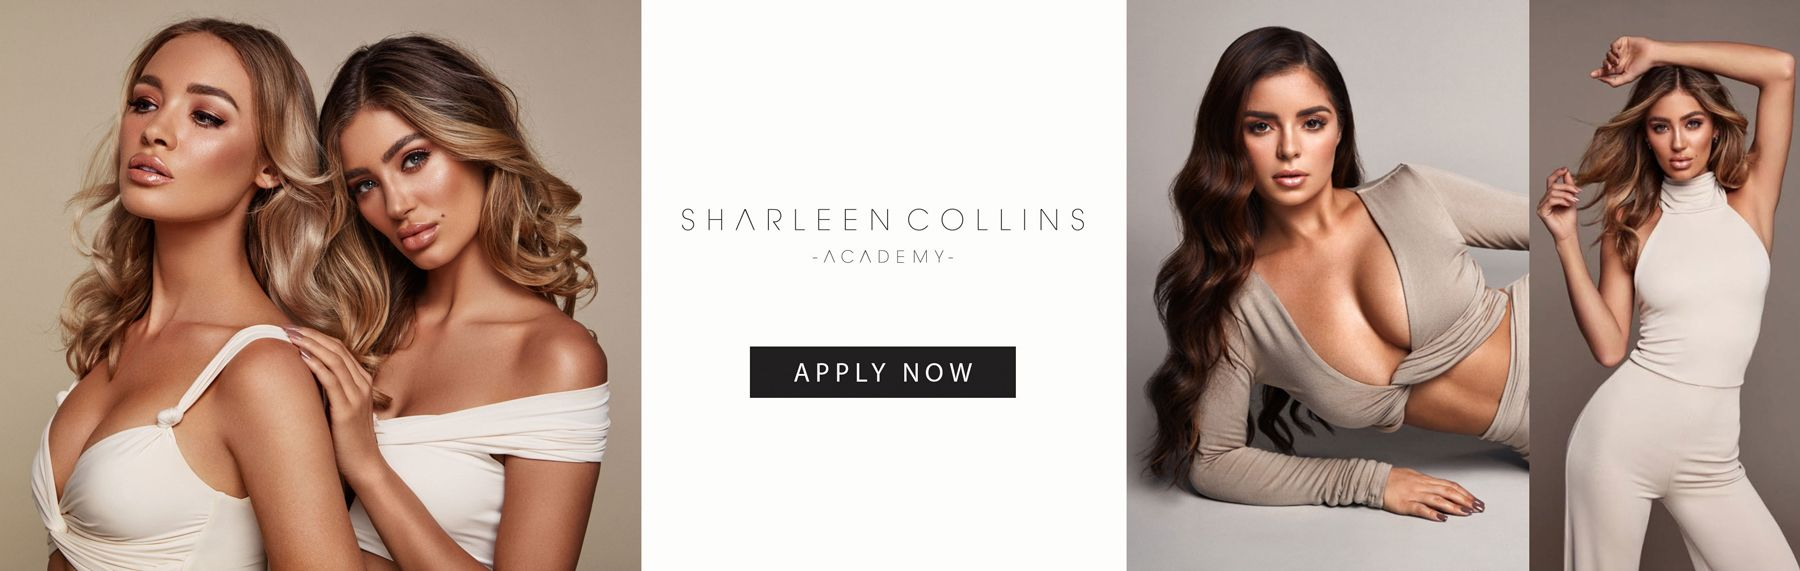 Sharleen Collins Academy